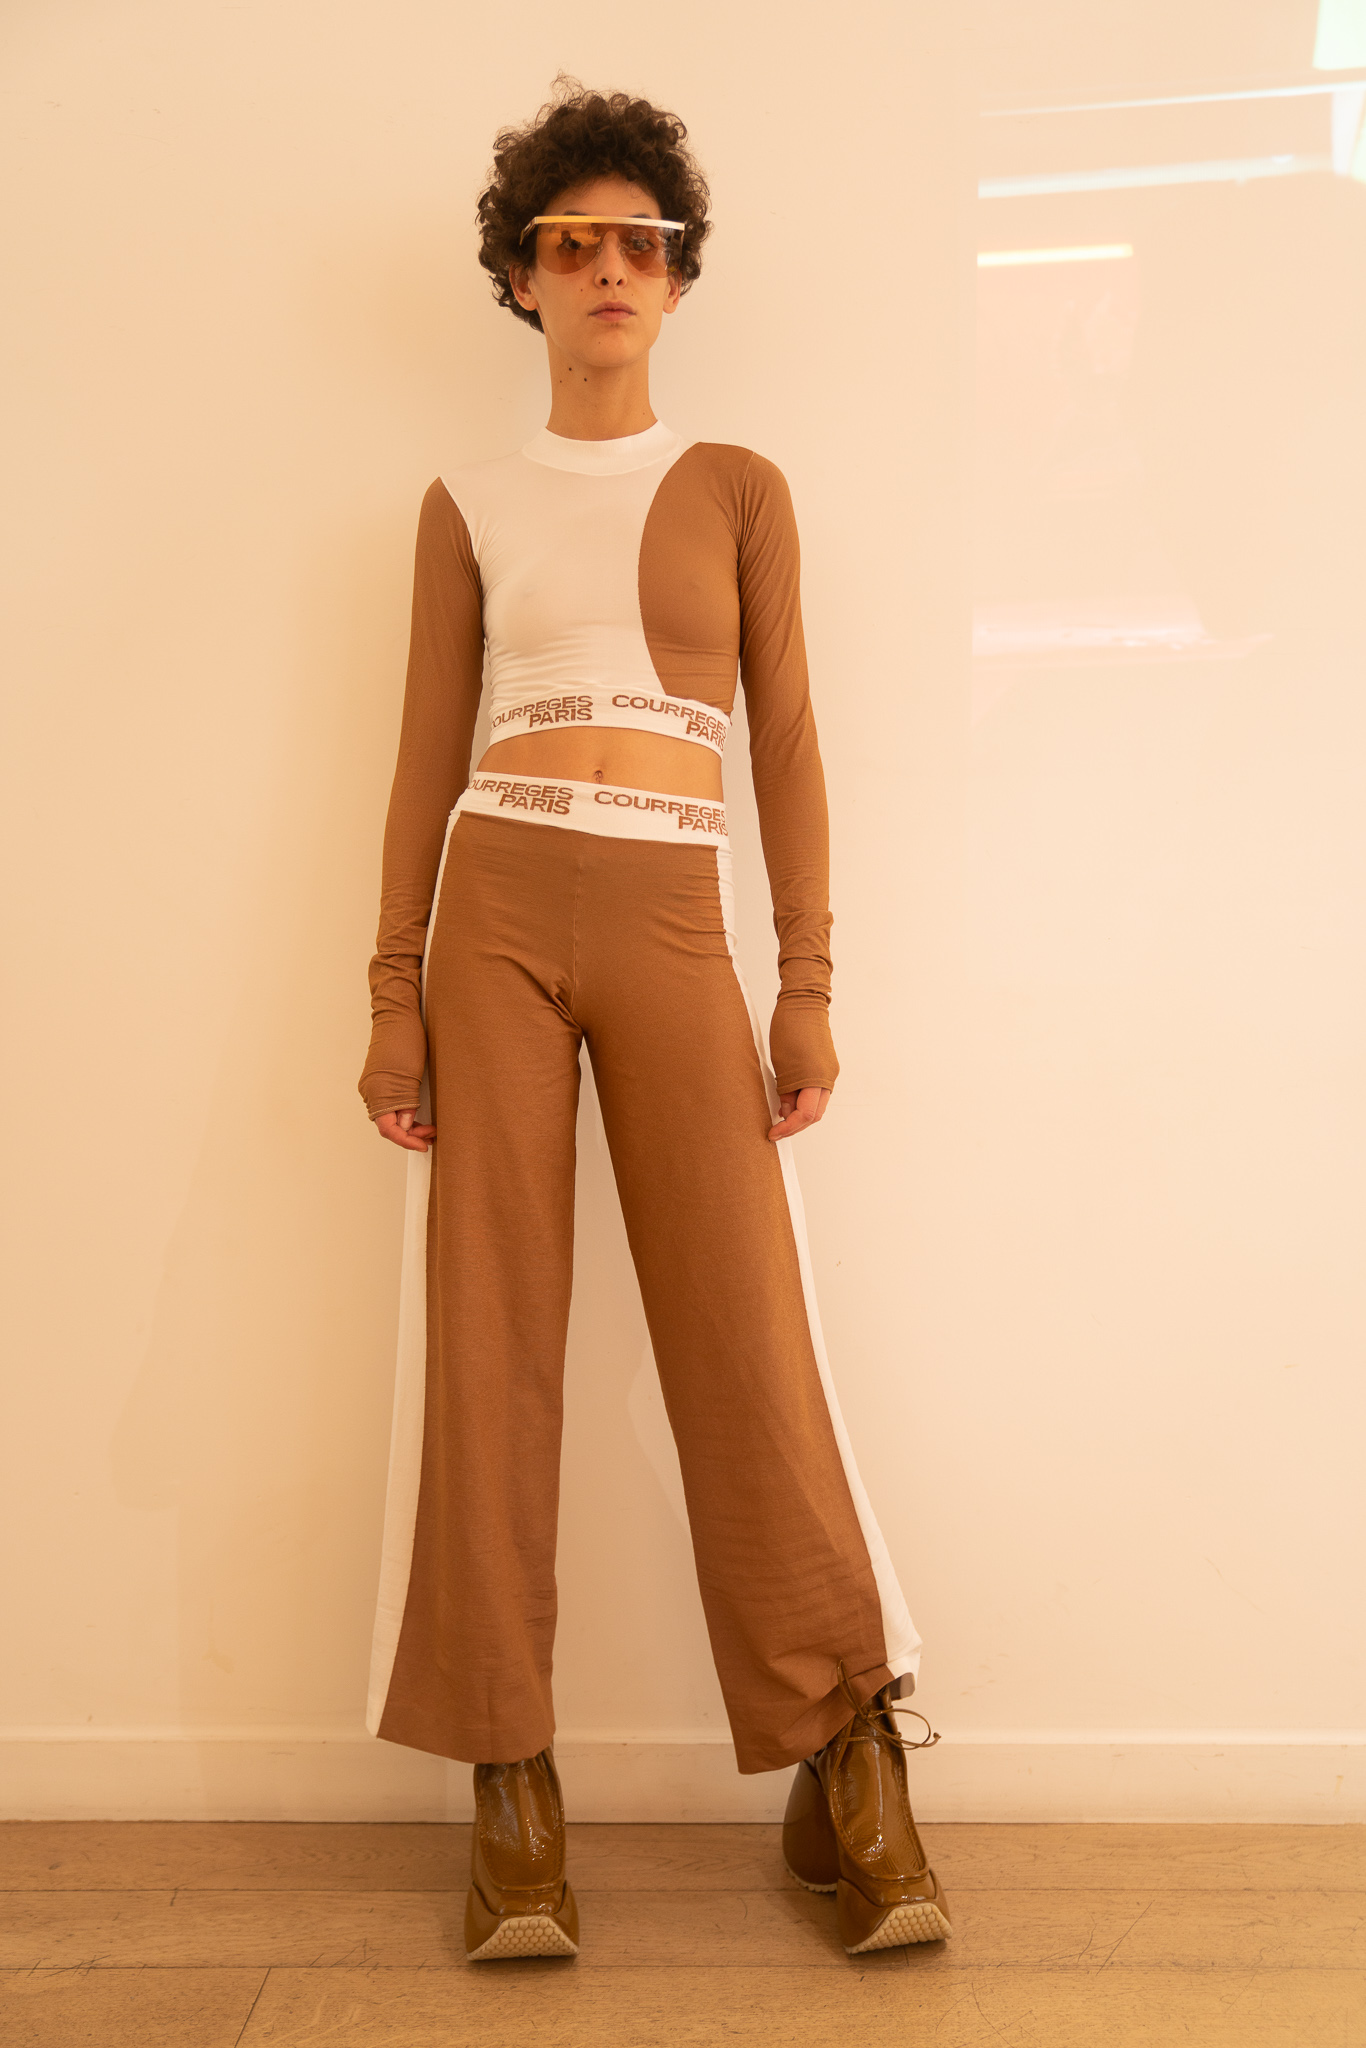 Courreges Long Sleeve Logo Crop Top in Brown and White Logo Flared Pants in Brown SS20